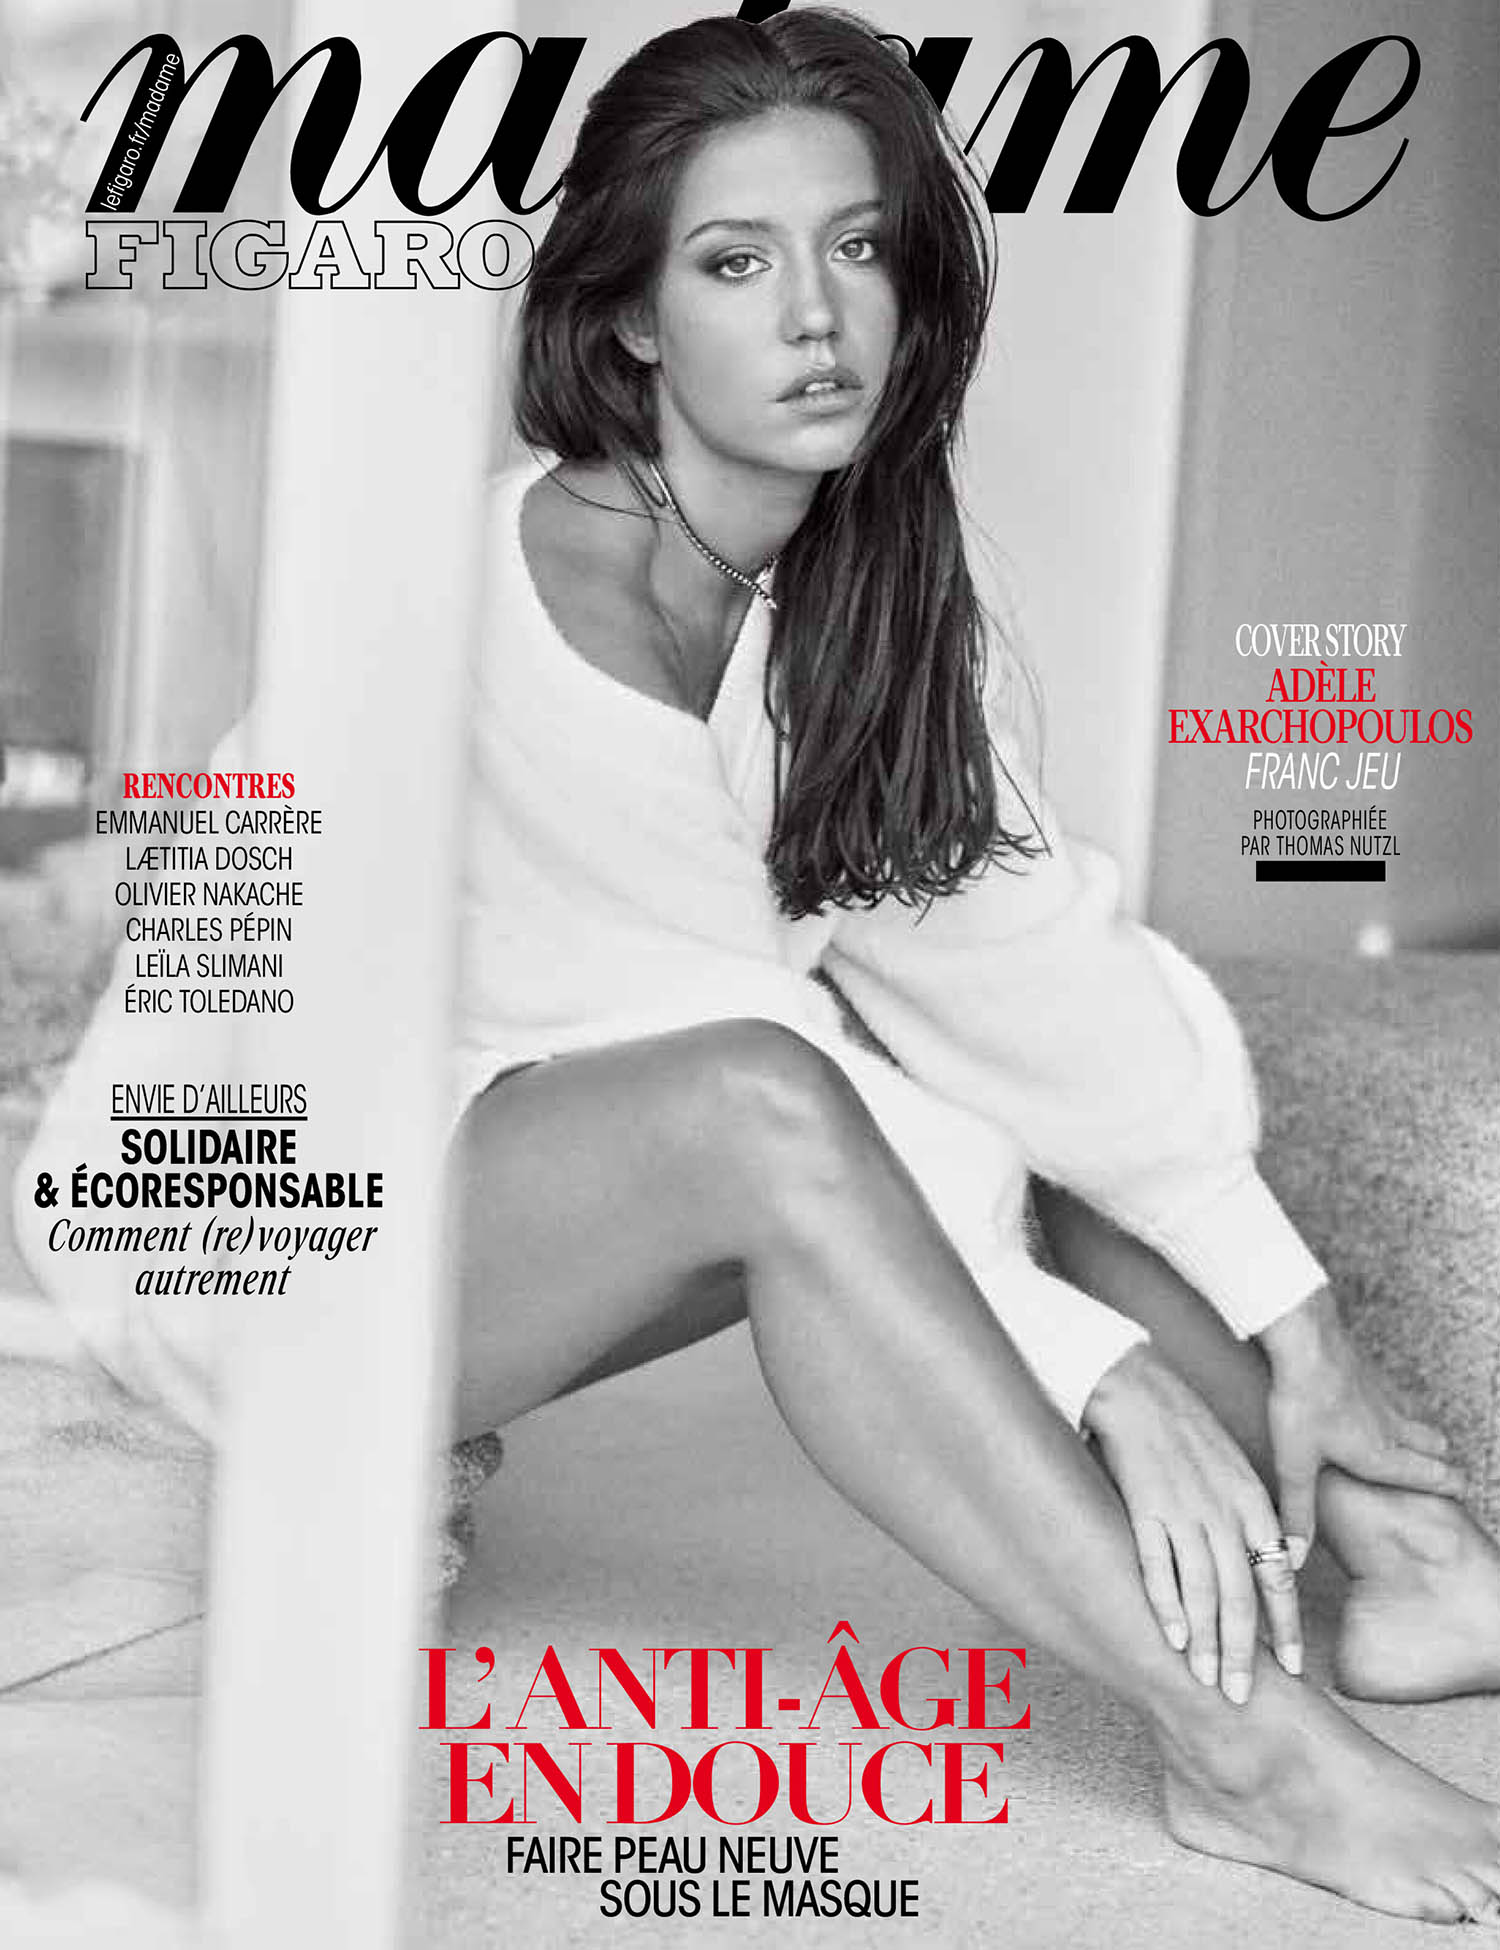 Adèle Exarchopoulos covers Madame Figaro January 29th, 2021 by Thomas Nutzl